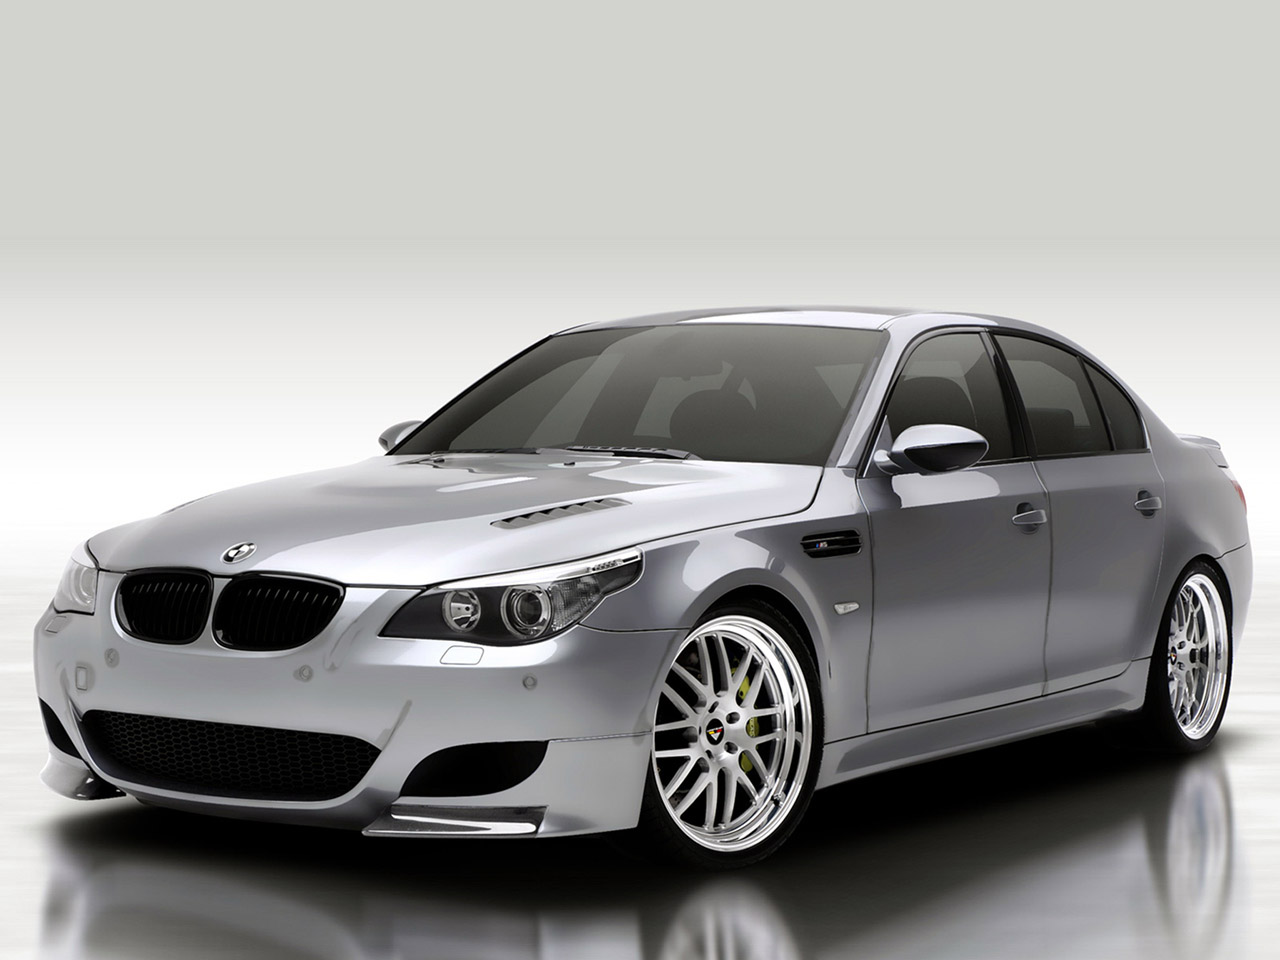 2006 bmw m5 e60 pictures information and specs auto. Black Bedroom Furniture Sets. Home Design Ideas